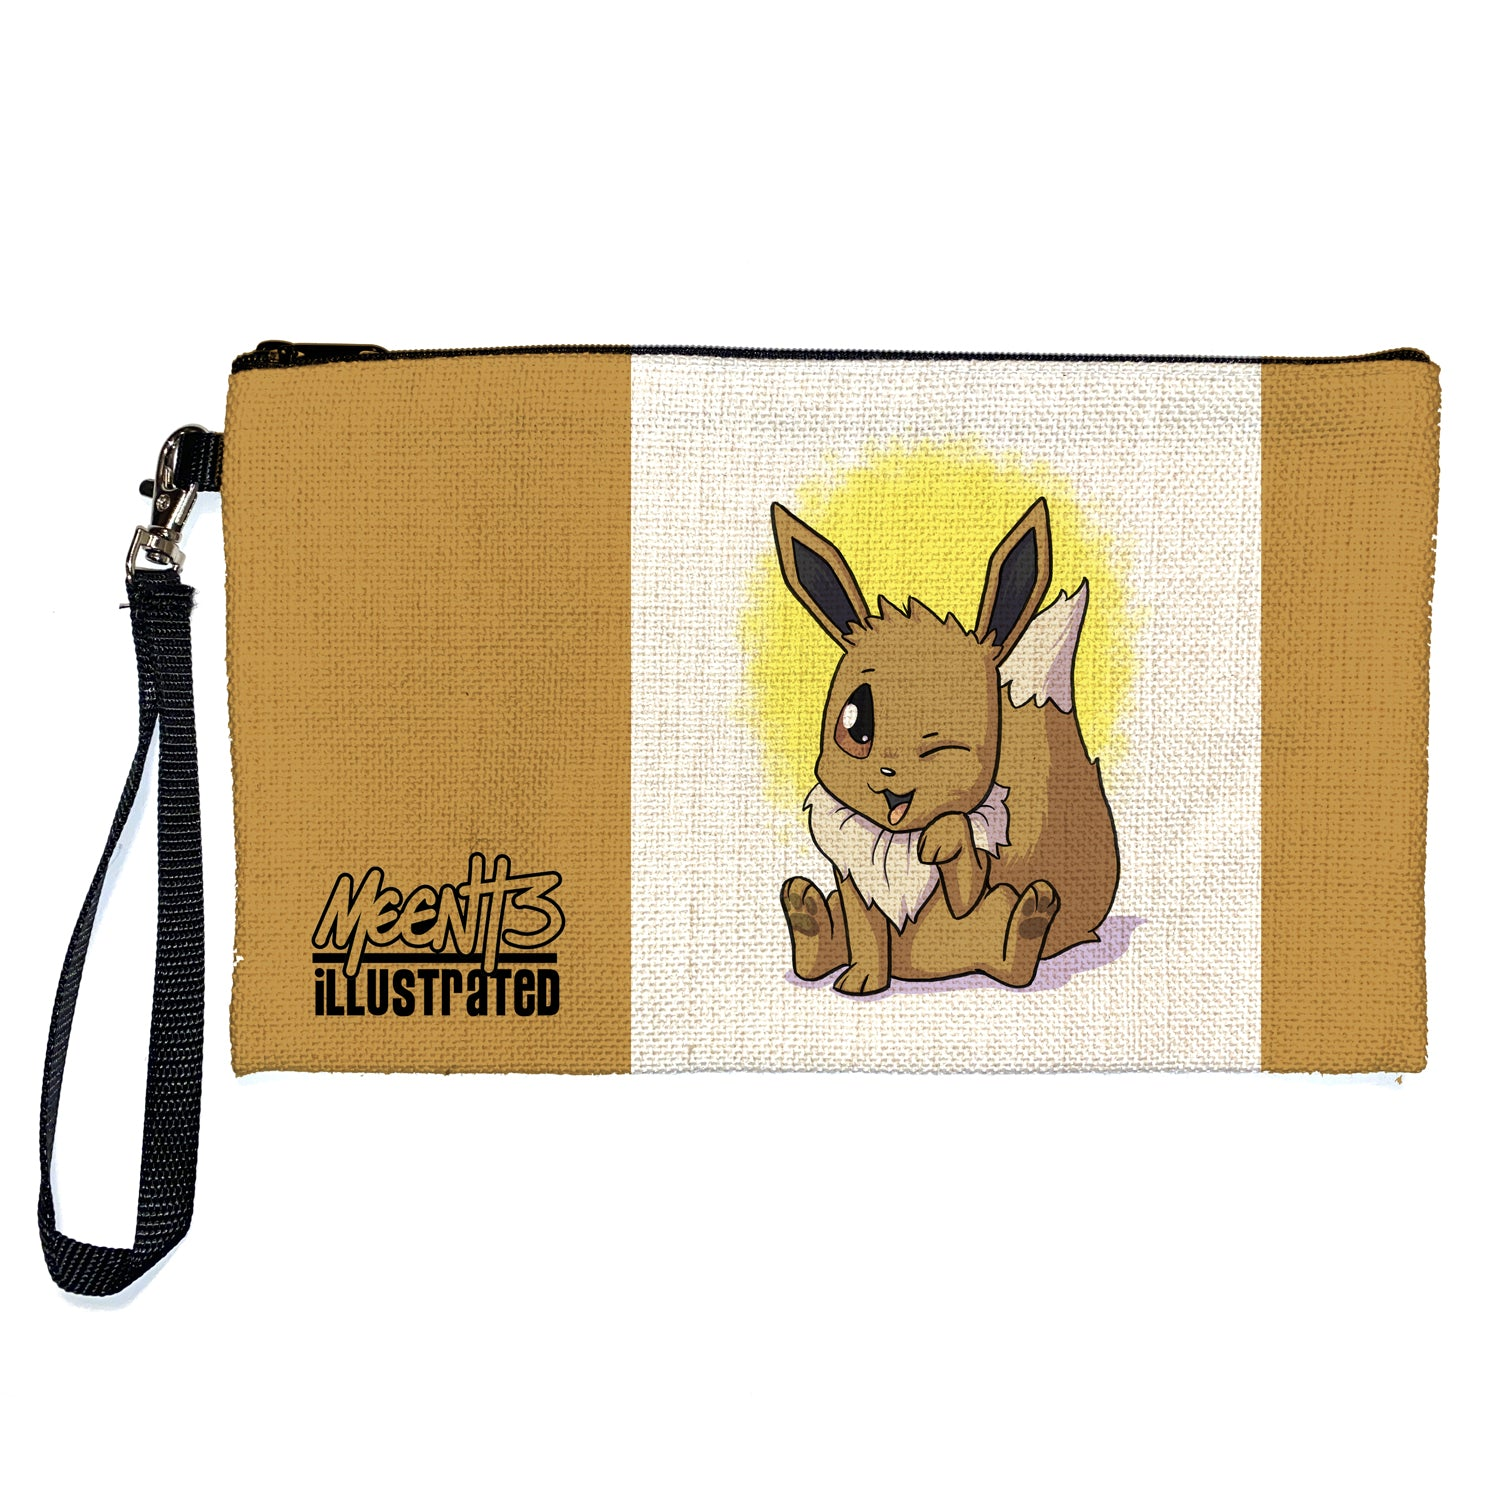 Eevee - Character - Large Pencil/Device Bag